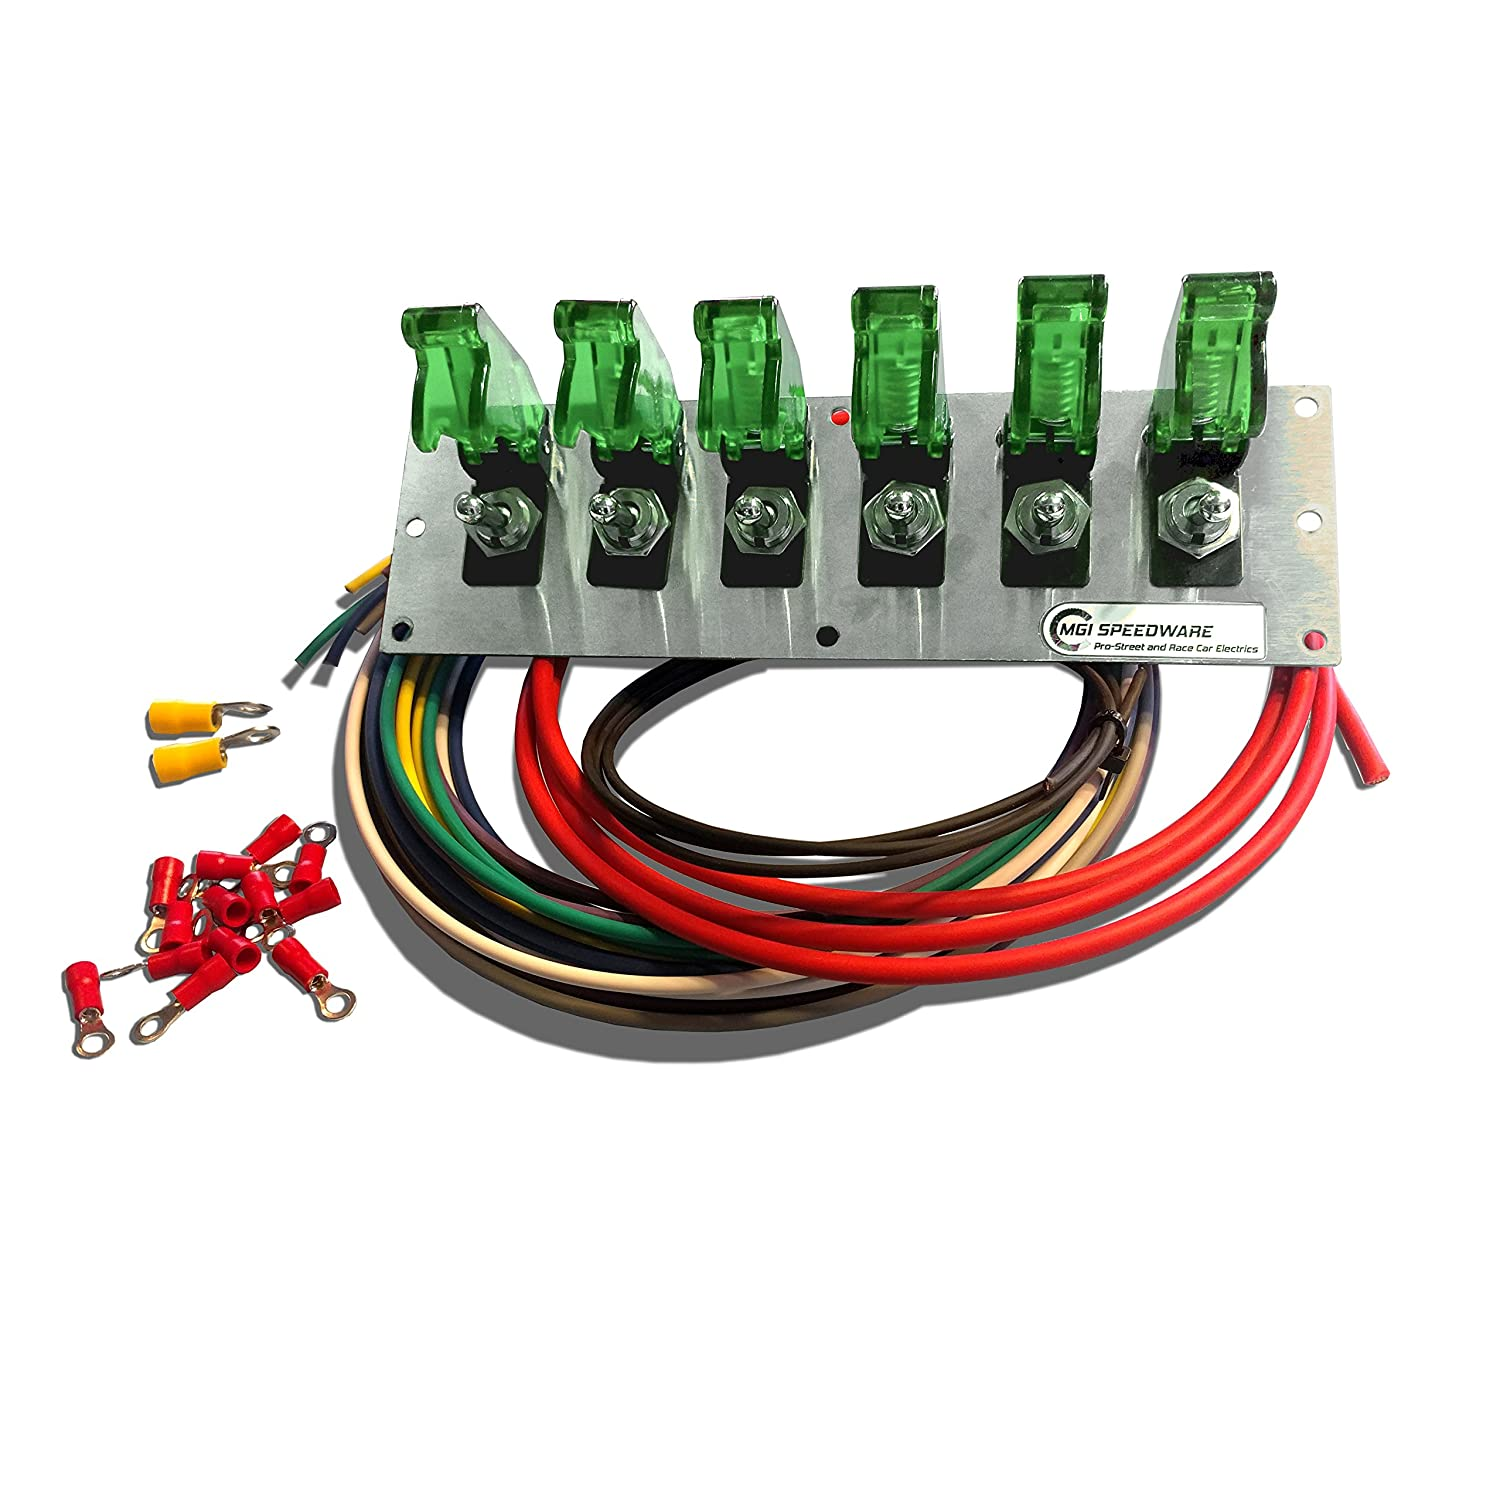 mgi speedware 6 gang metal toggle switch panel wiring kit with aircraft  safety covers — 12v racing car, boat and truck (green): amazon ca:  automotive